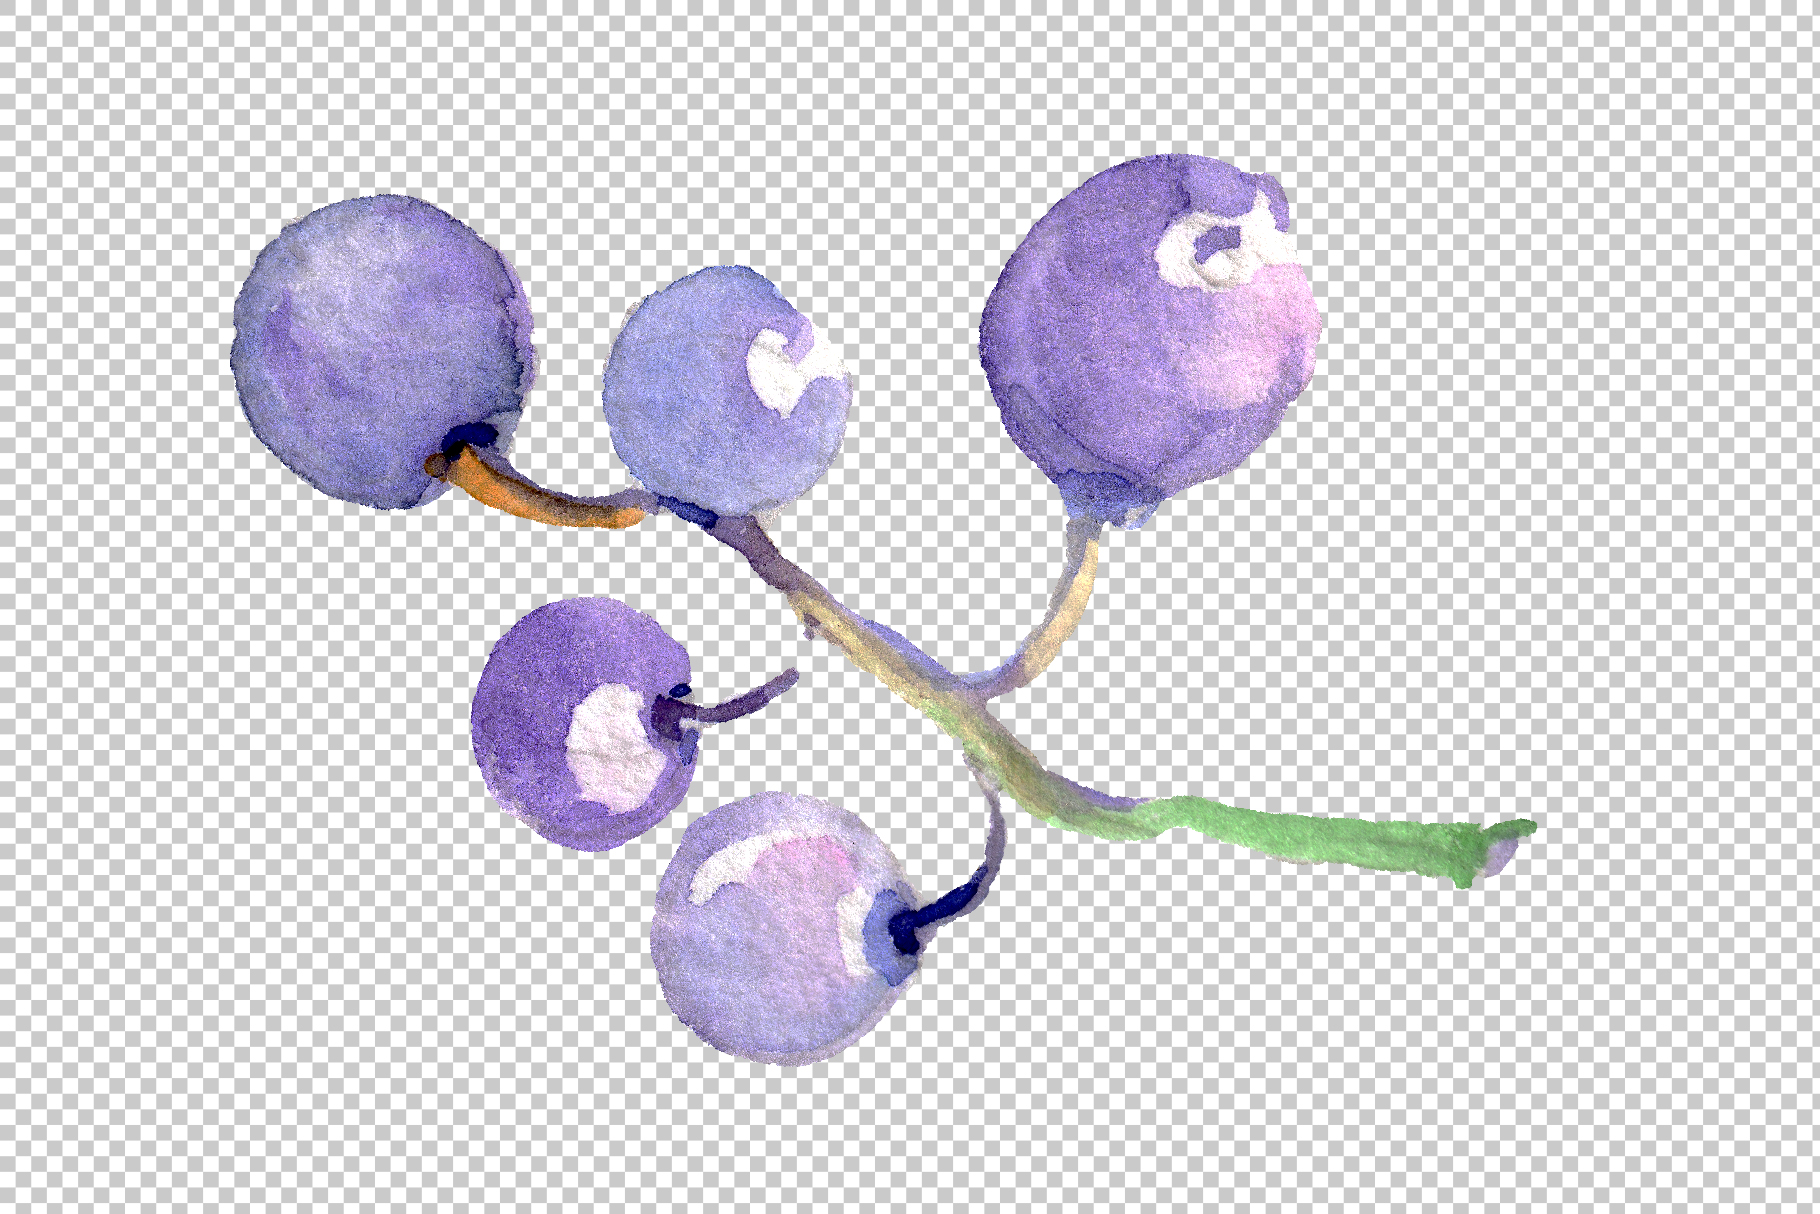 Grapes Watercolor png example image 7